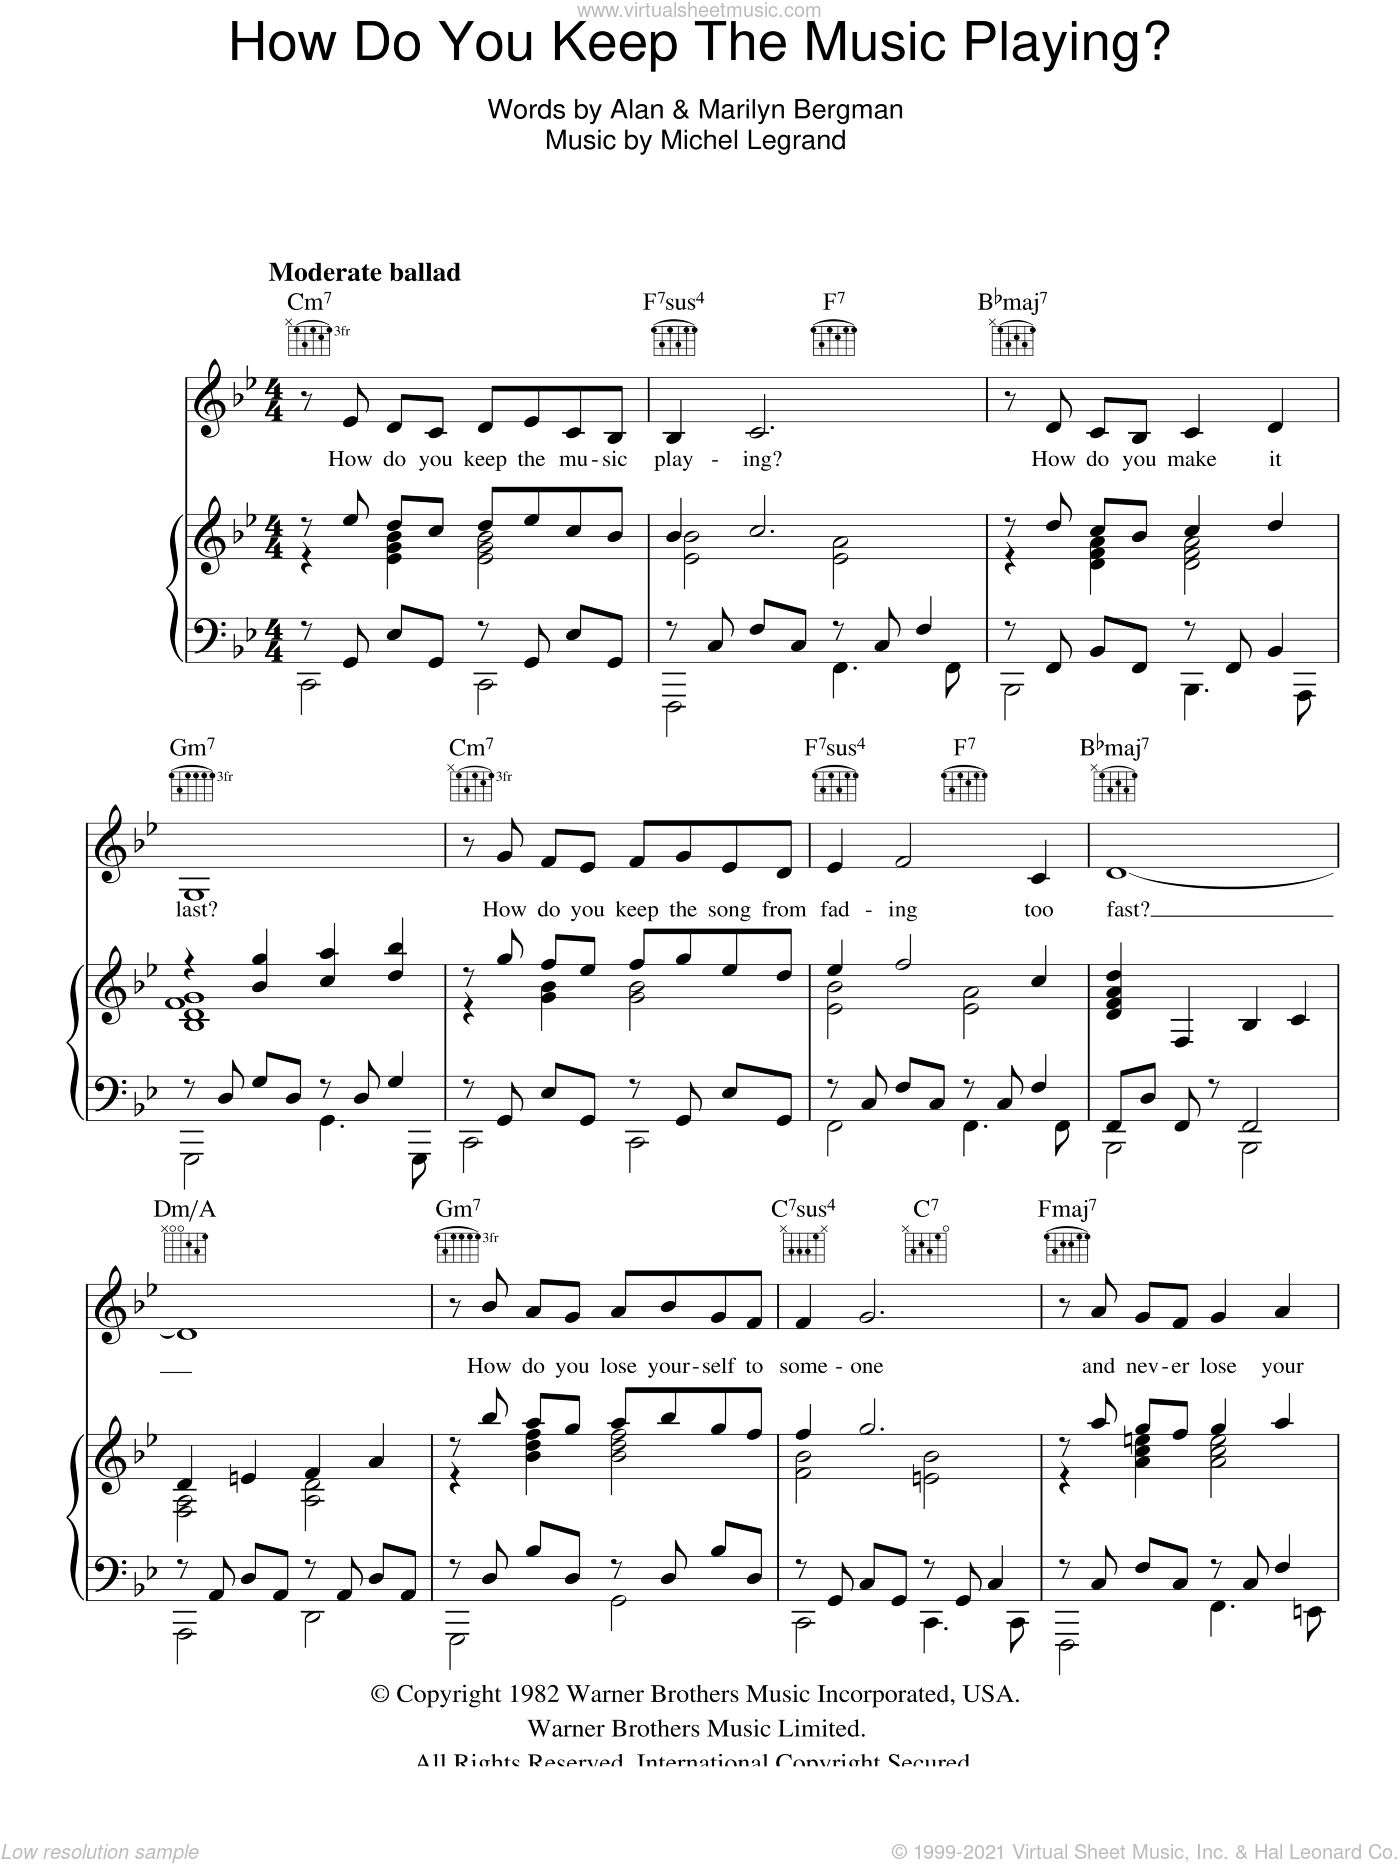 How Do You Keep The Music Playing? sheet music for voice, piano or guitar by James Ingram, Alan, Marilyn Bergman and Michel LeGrand, intermediate skill level